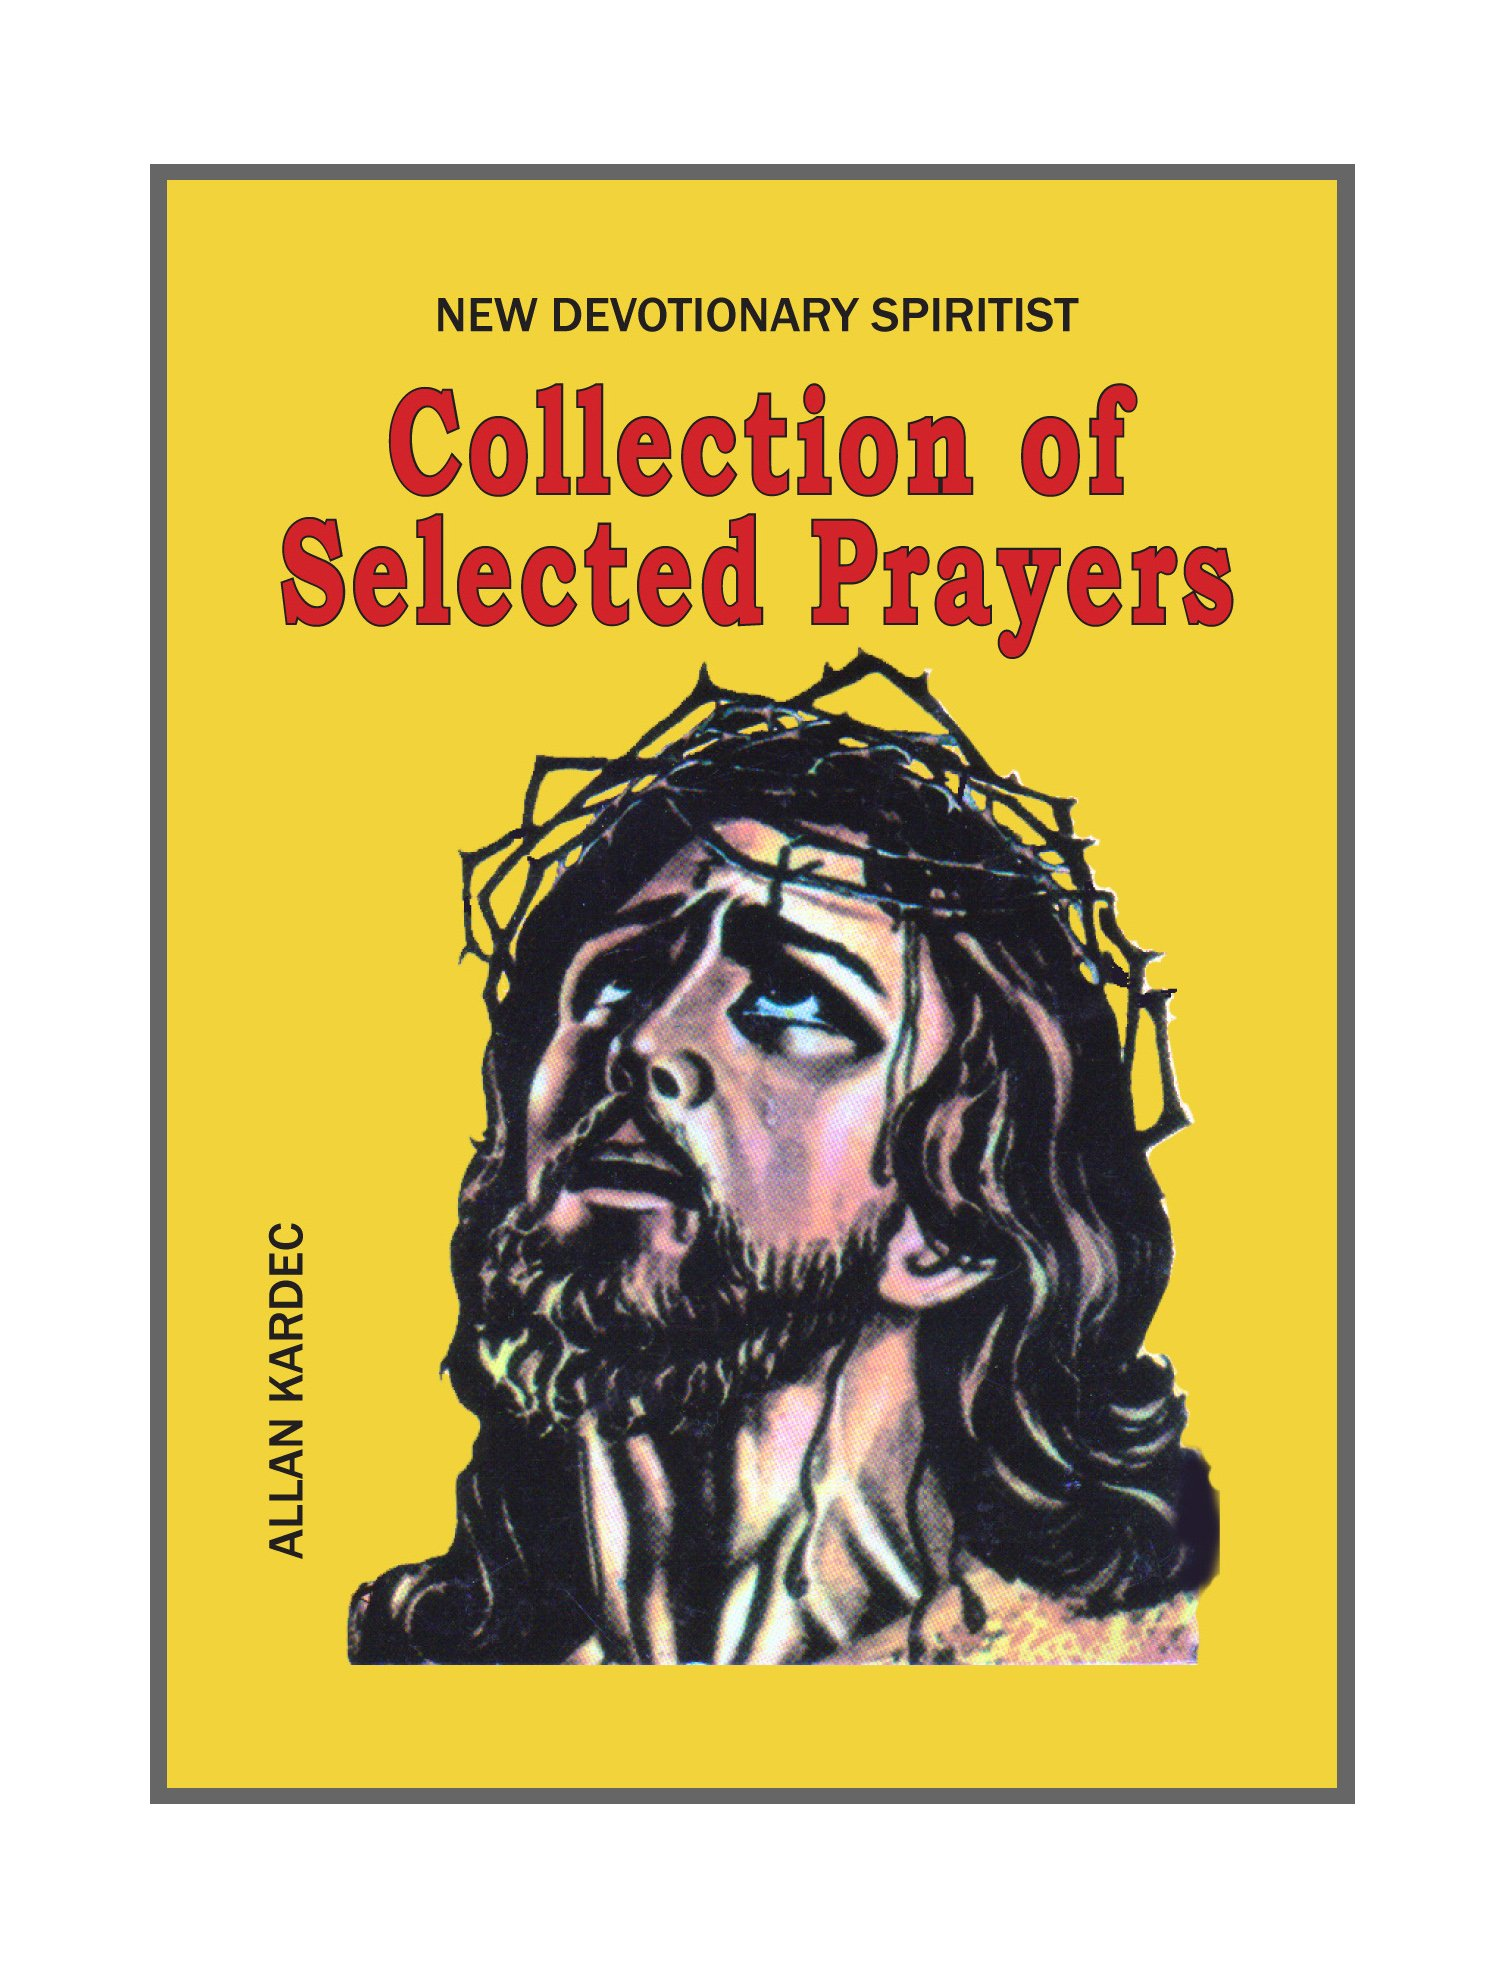 Collection of selected prayers: Allan Kardec: Amazon com: Books